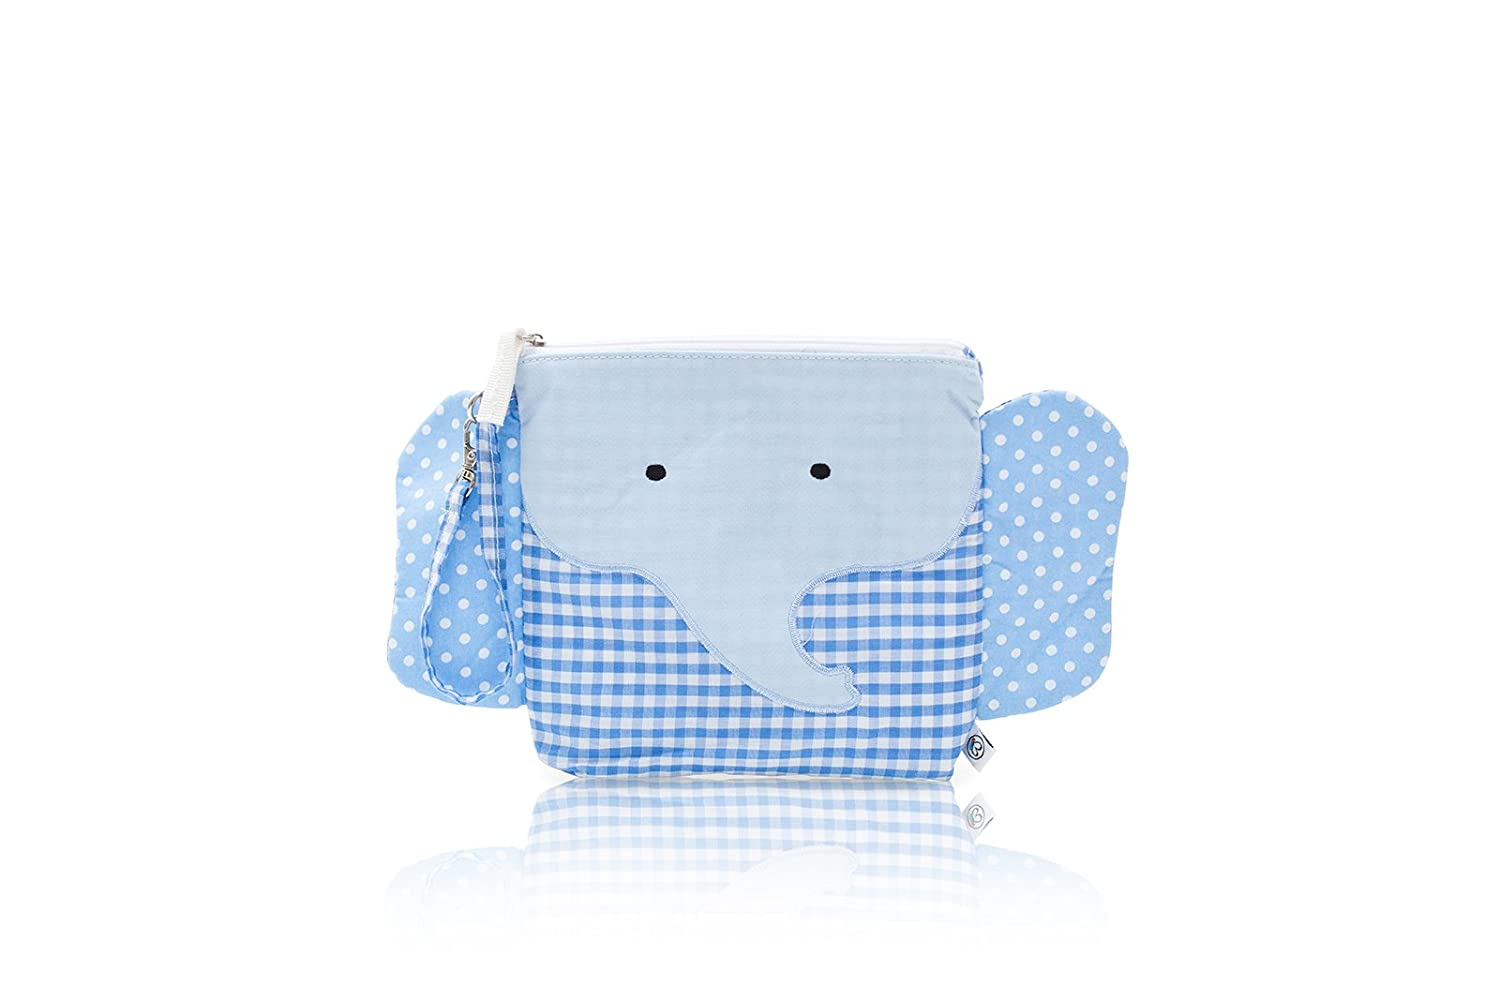 Nikiani My First Buddies Snack Bag - Charlie Blue Elephant by Nikiani Inc   B00Q7K6KZQ